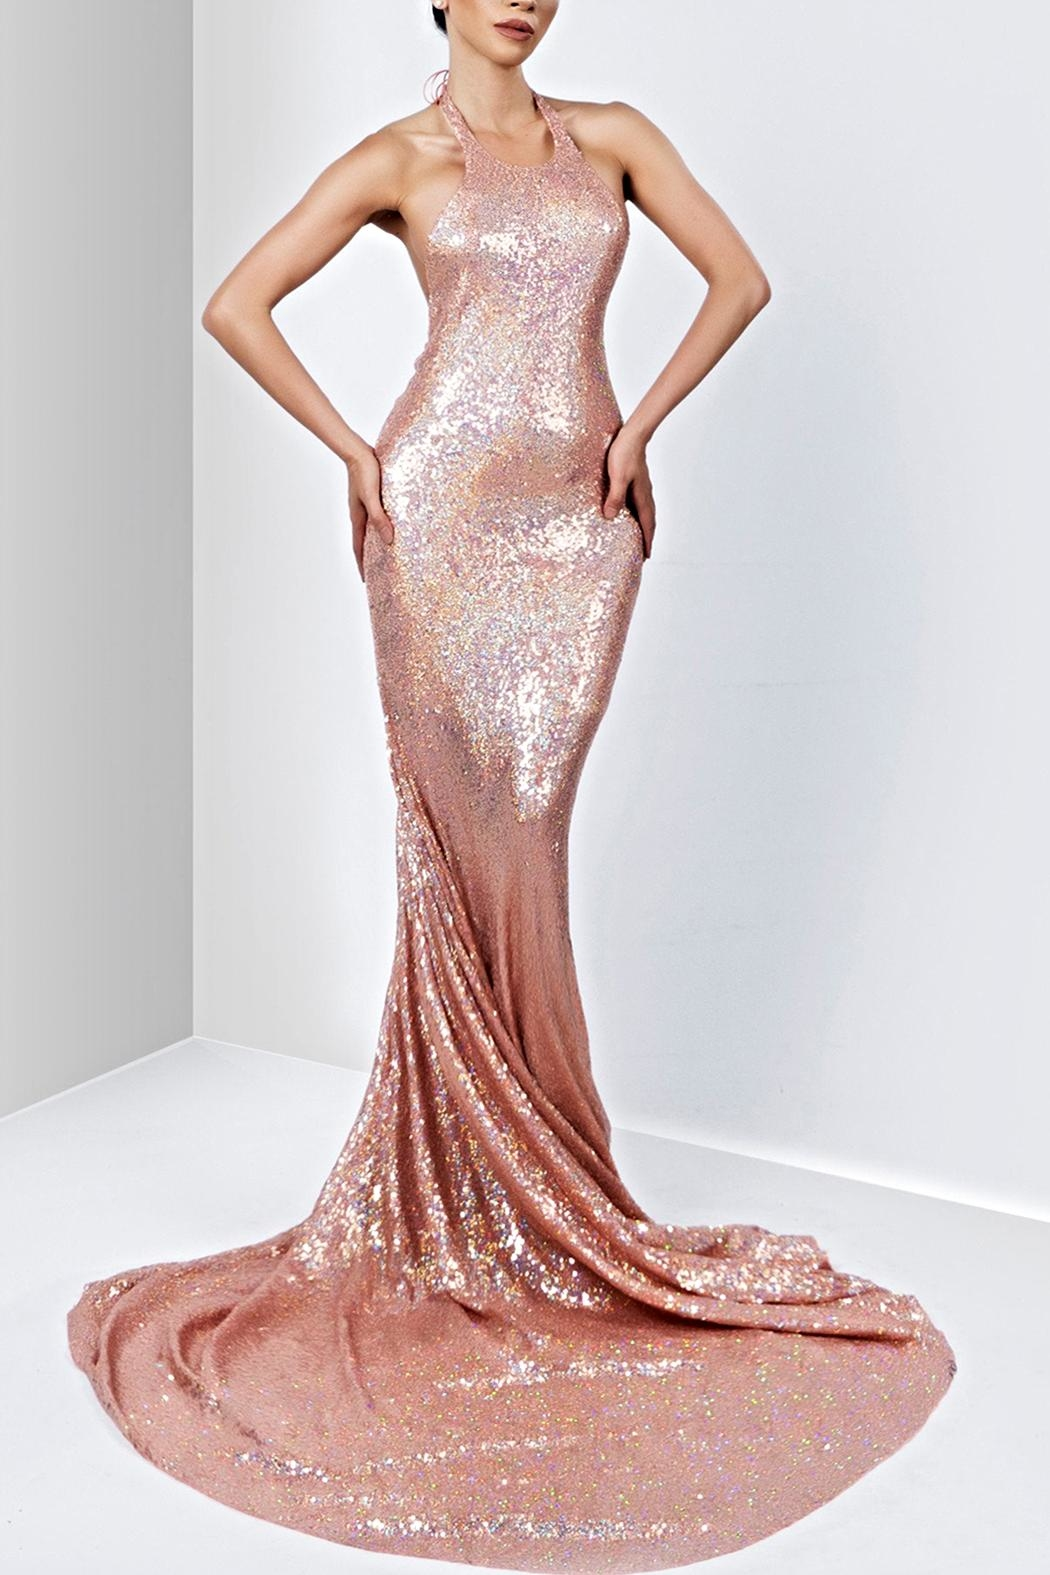 Savee Couture Savee Sequin Maxi Dress - Front Cropped Image